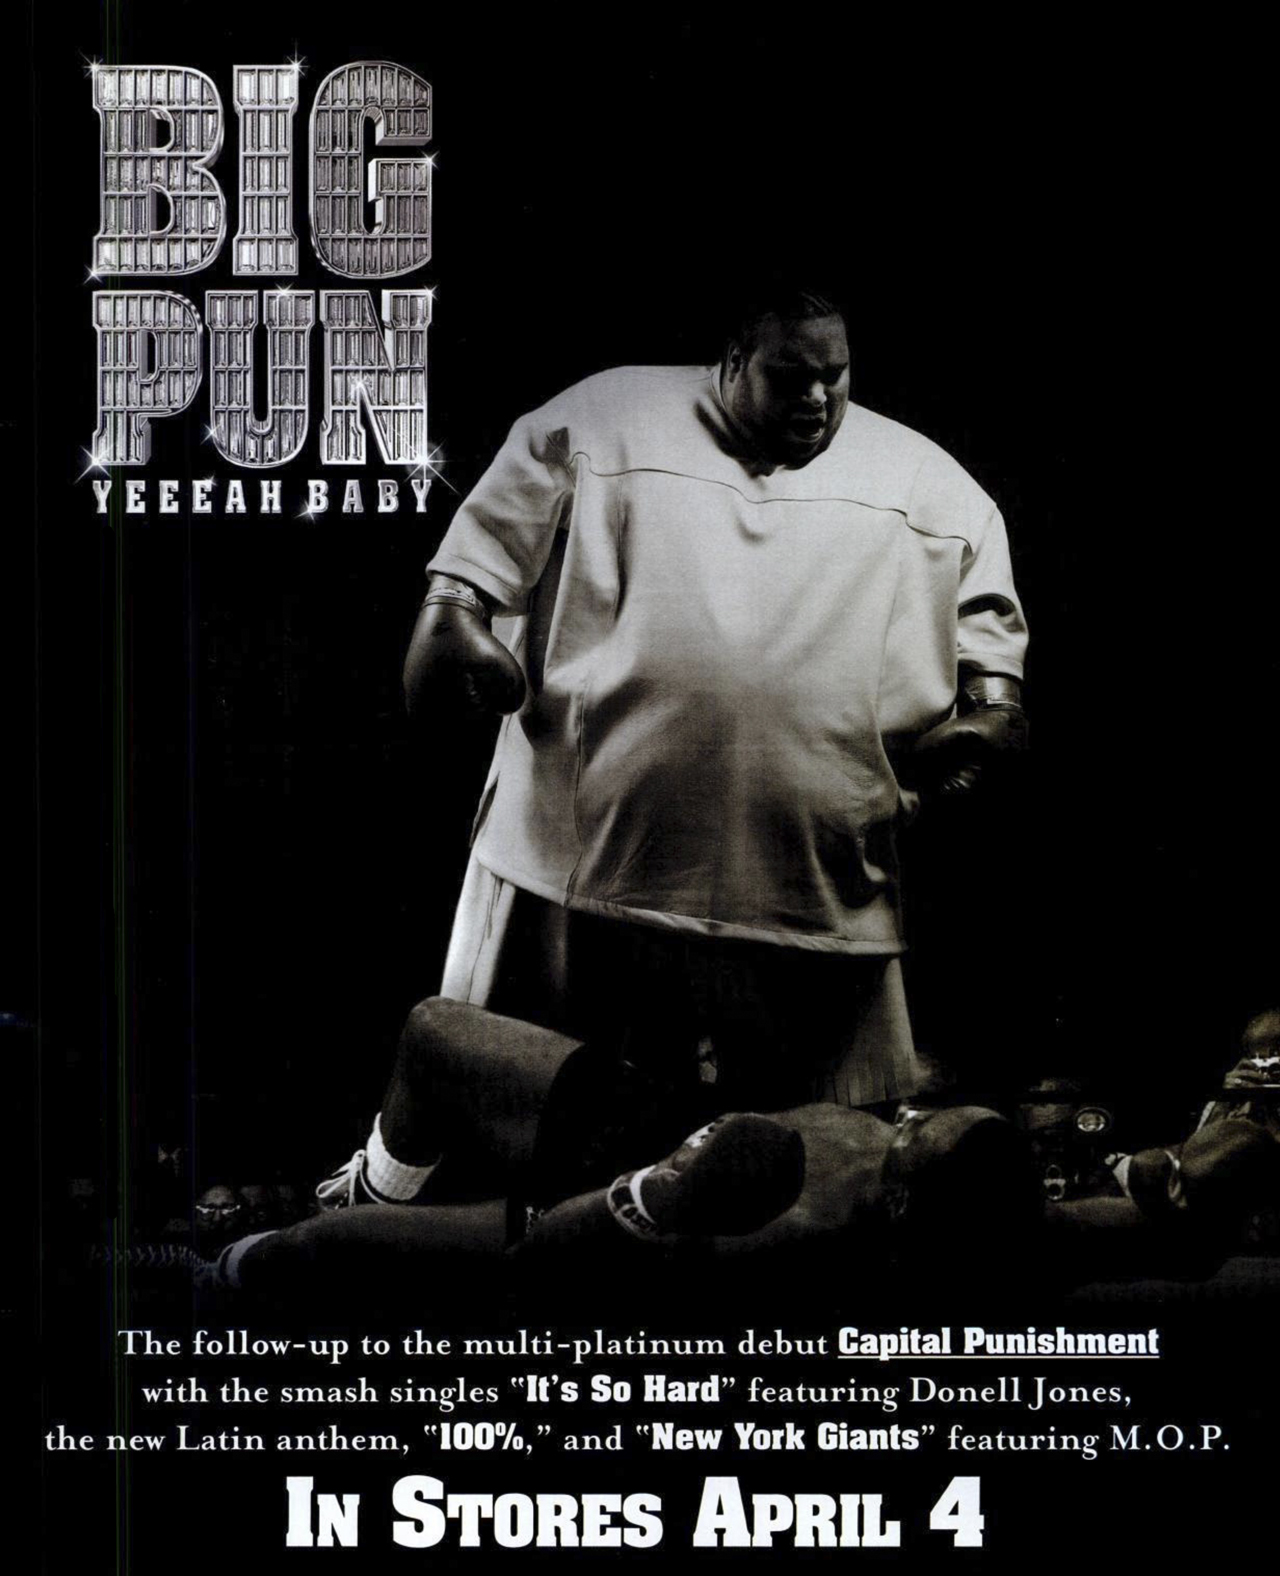 Big Pun Yeeeah Baby Advertisement Loud Records